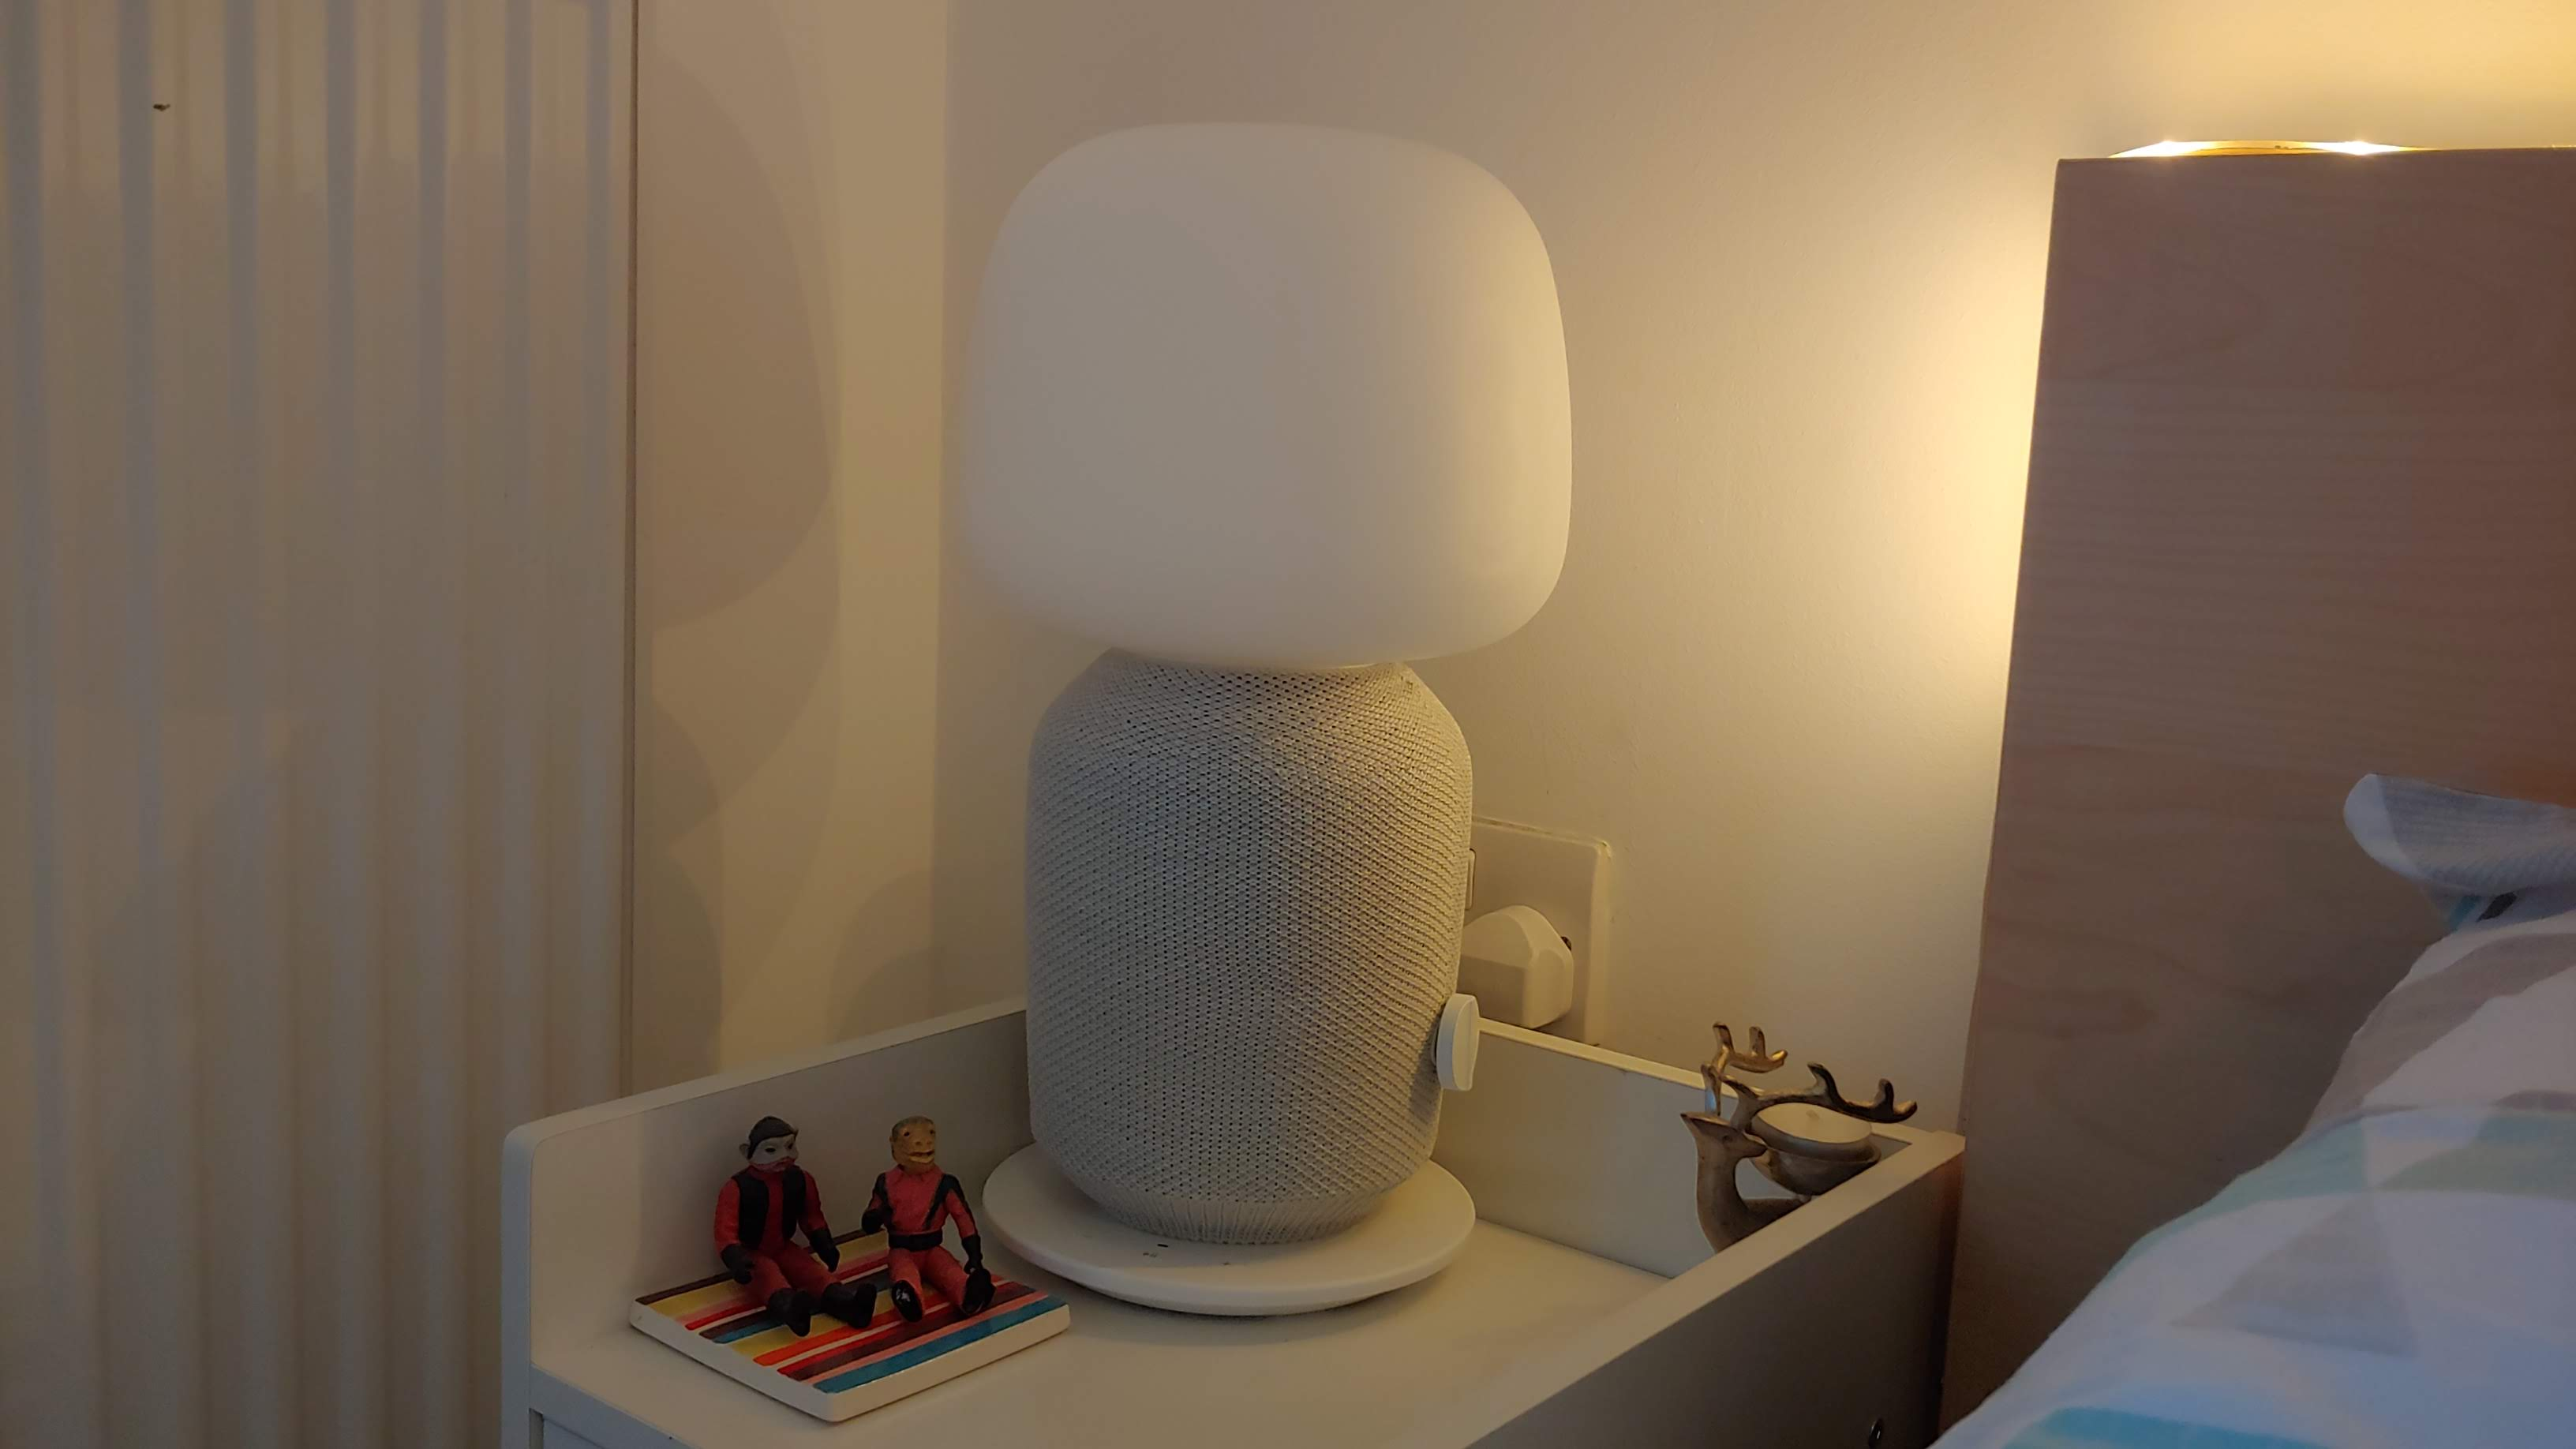 Sonos IKEA Symfonisk lamp speaker review | TechRadar